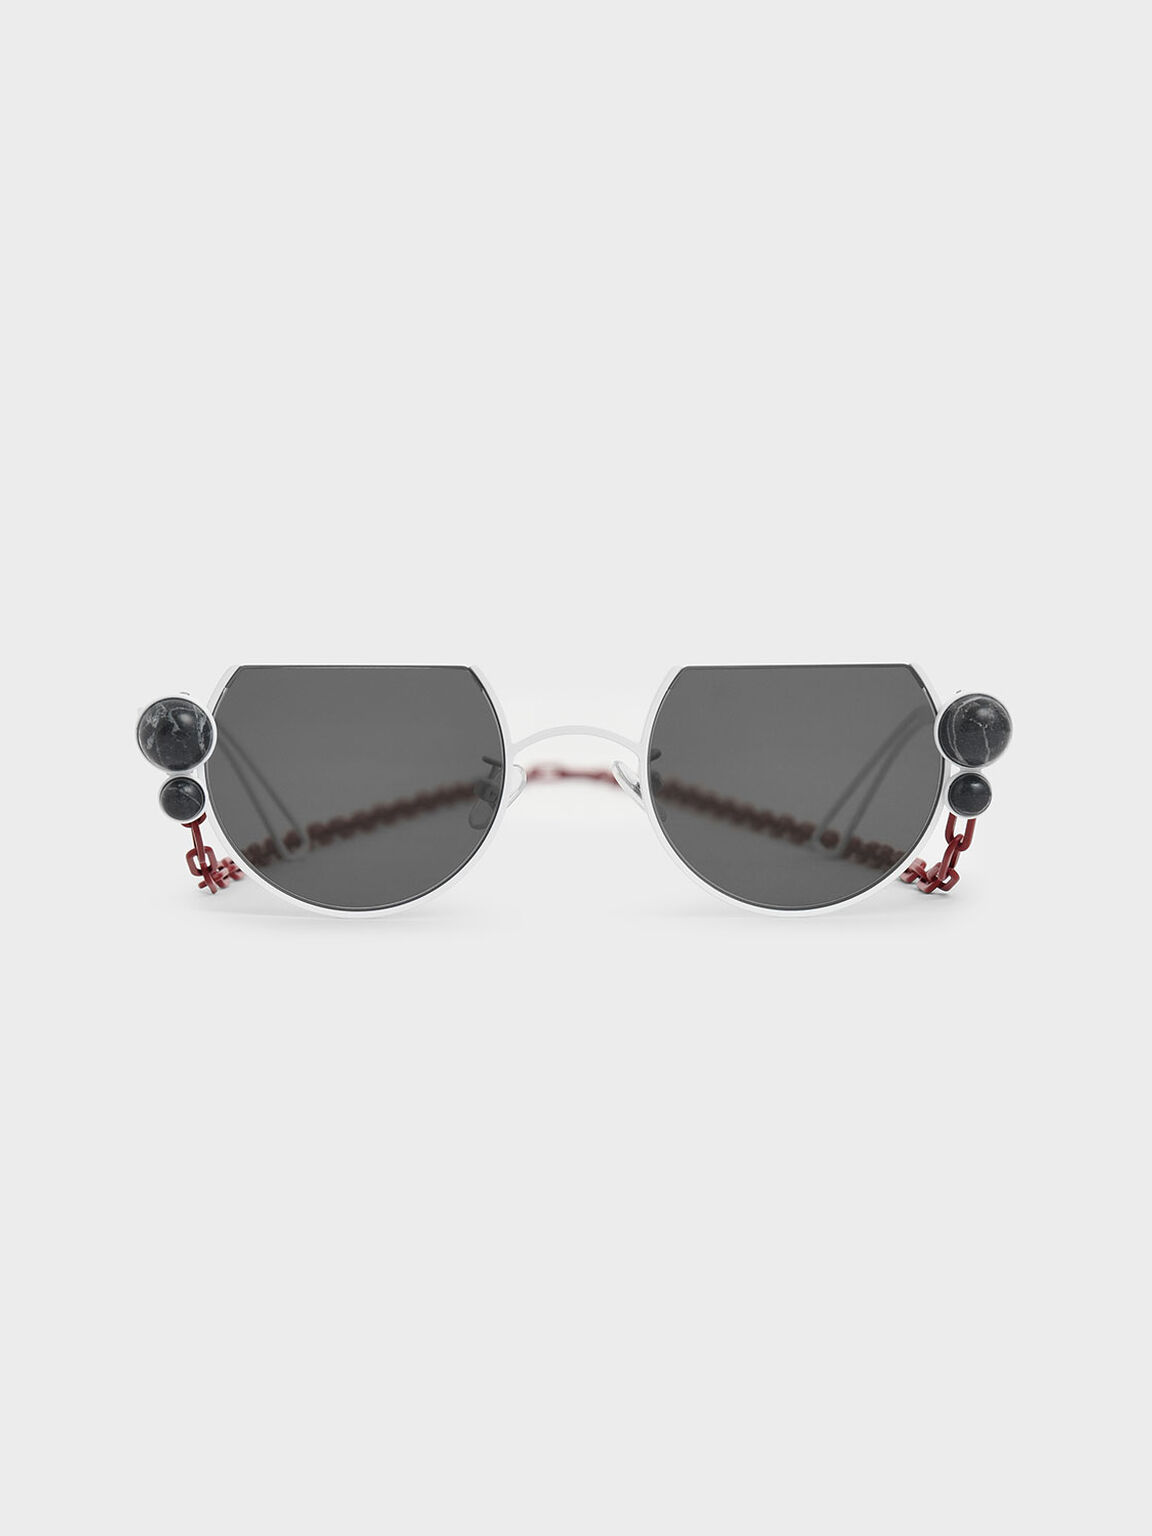 Onyx Stone Chain Link Round Cut-Off Sunglasses, White, hi-res